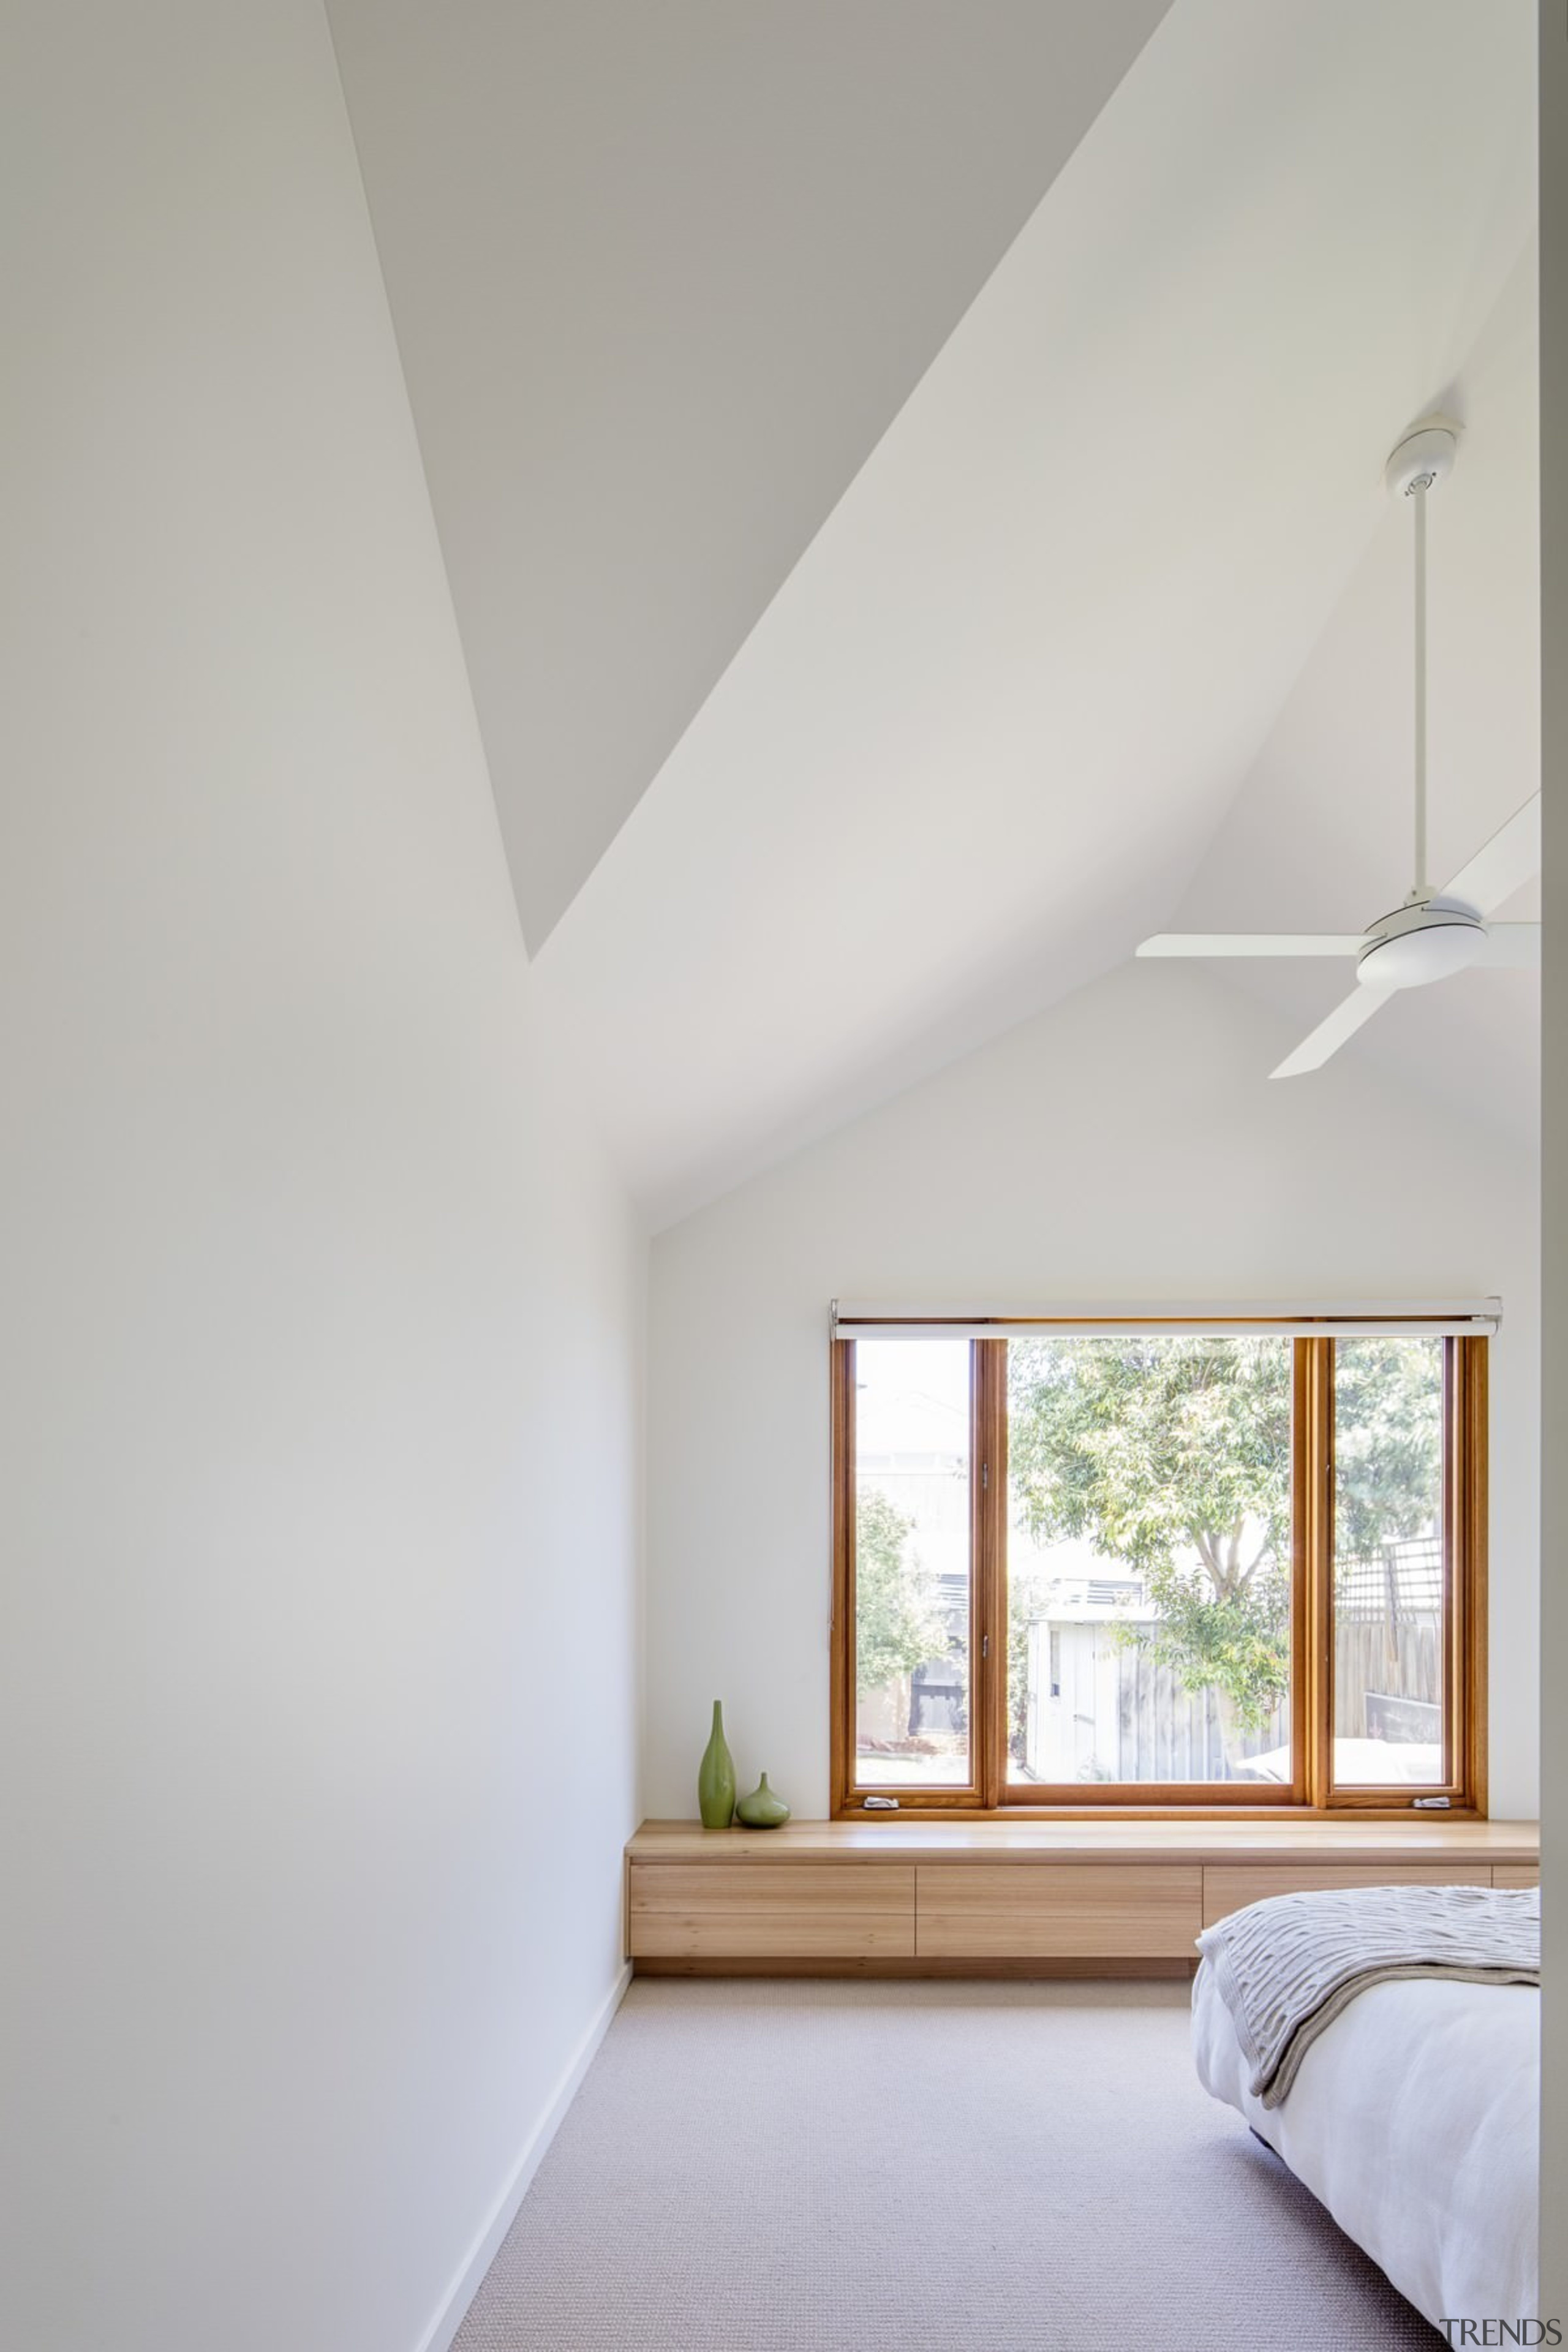 A window seat/bench is ideal for afternoon reading architecture, ceiling, daylighting, floor, home, house, interior design, real estate, room, window, wood, gray